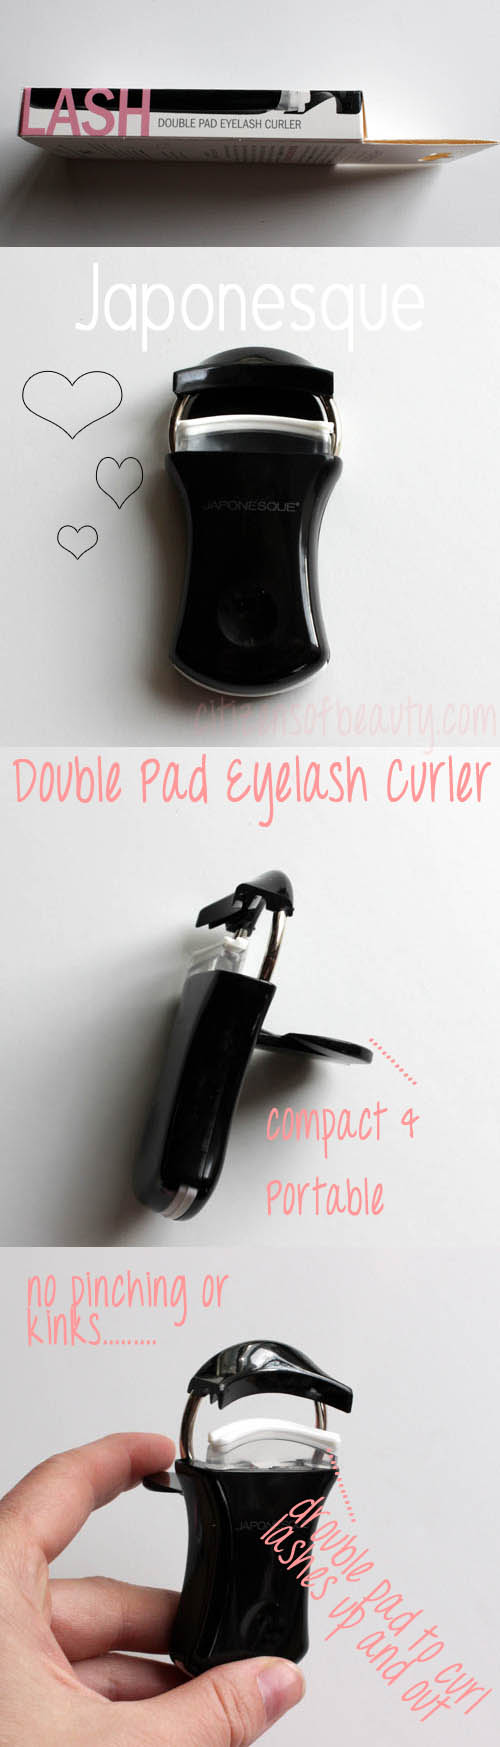 Japonesque Double Pad Eyelash Curler Review